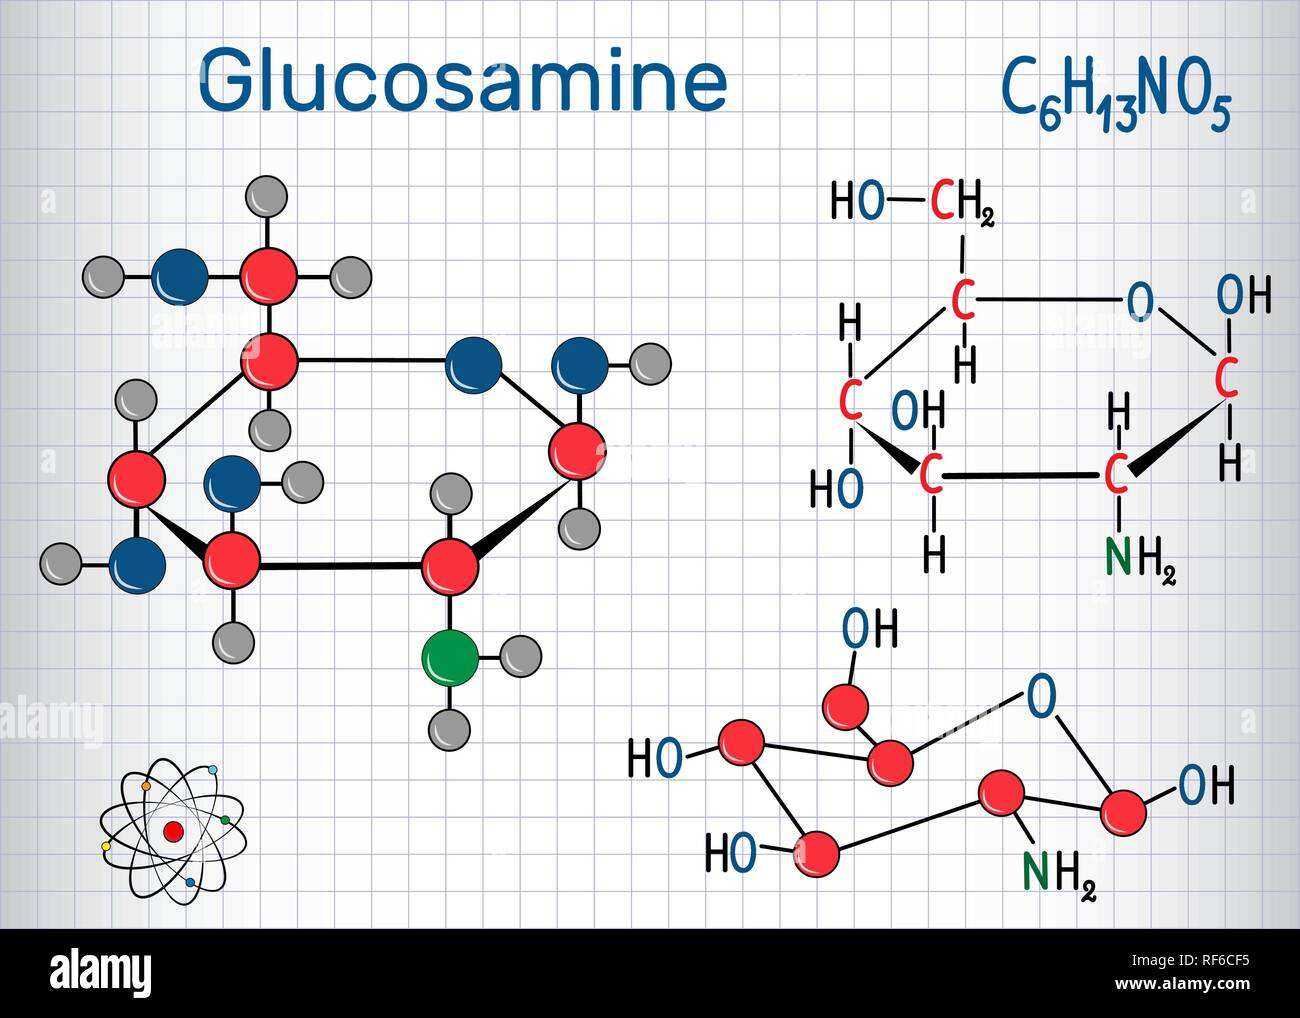 Glucosamine molecule, is one of the most abundant monosaccharides, is dietary supplement. Structural chemical formula and molecule model. Sheet of pap Stock Vector